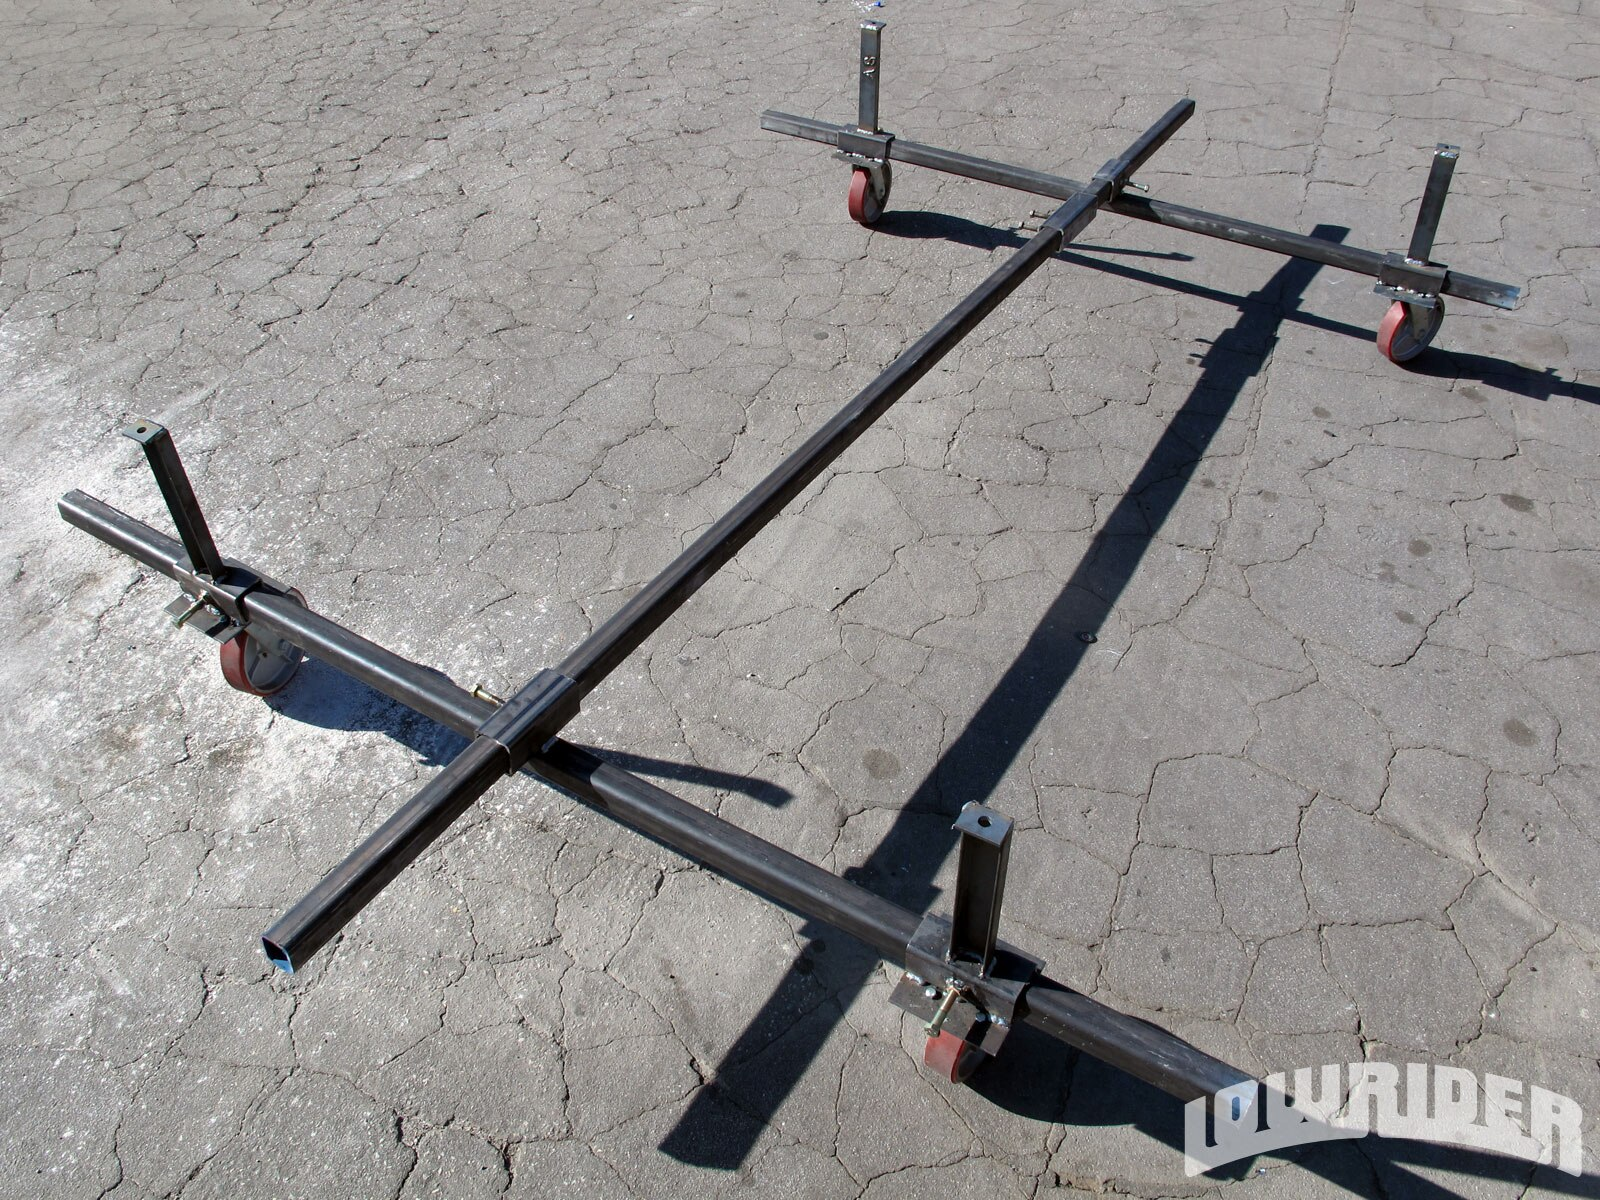 1303-lrmp-24-o-how-to-build-a-body-stand-stand1